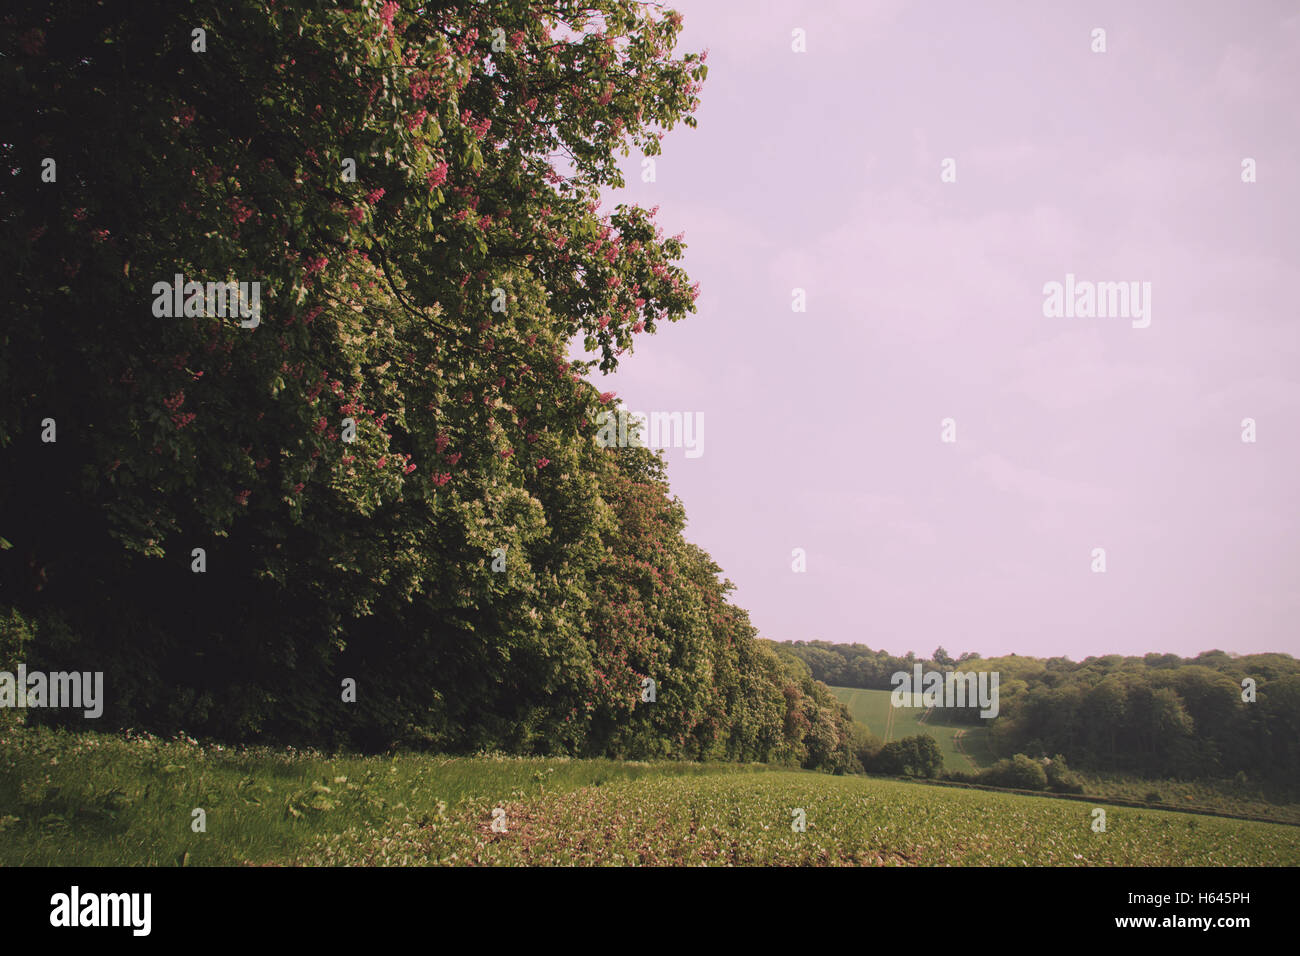 View over the Chilterns landscape in Buckinghamshire, England Vintage Retro Filter. - Stock Image